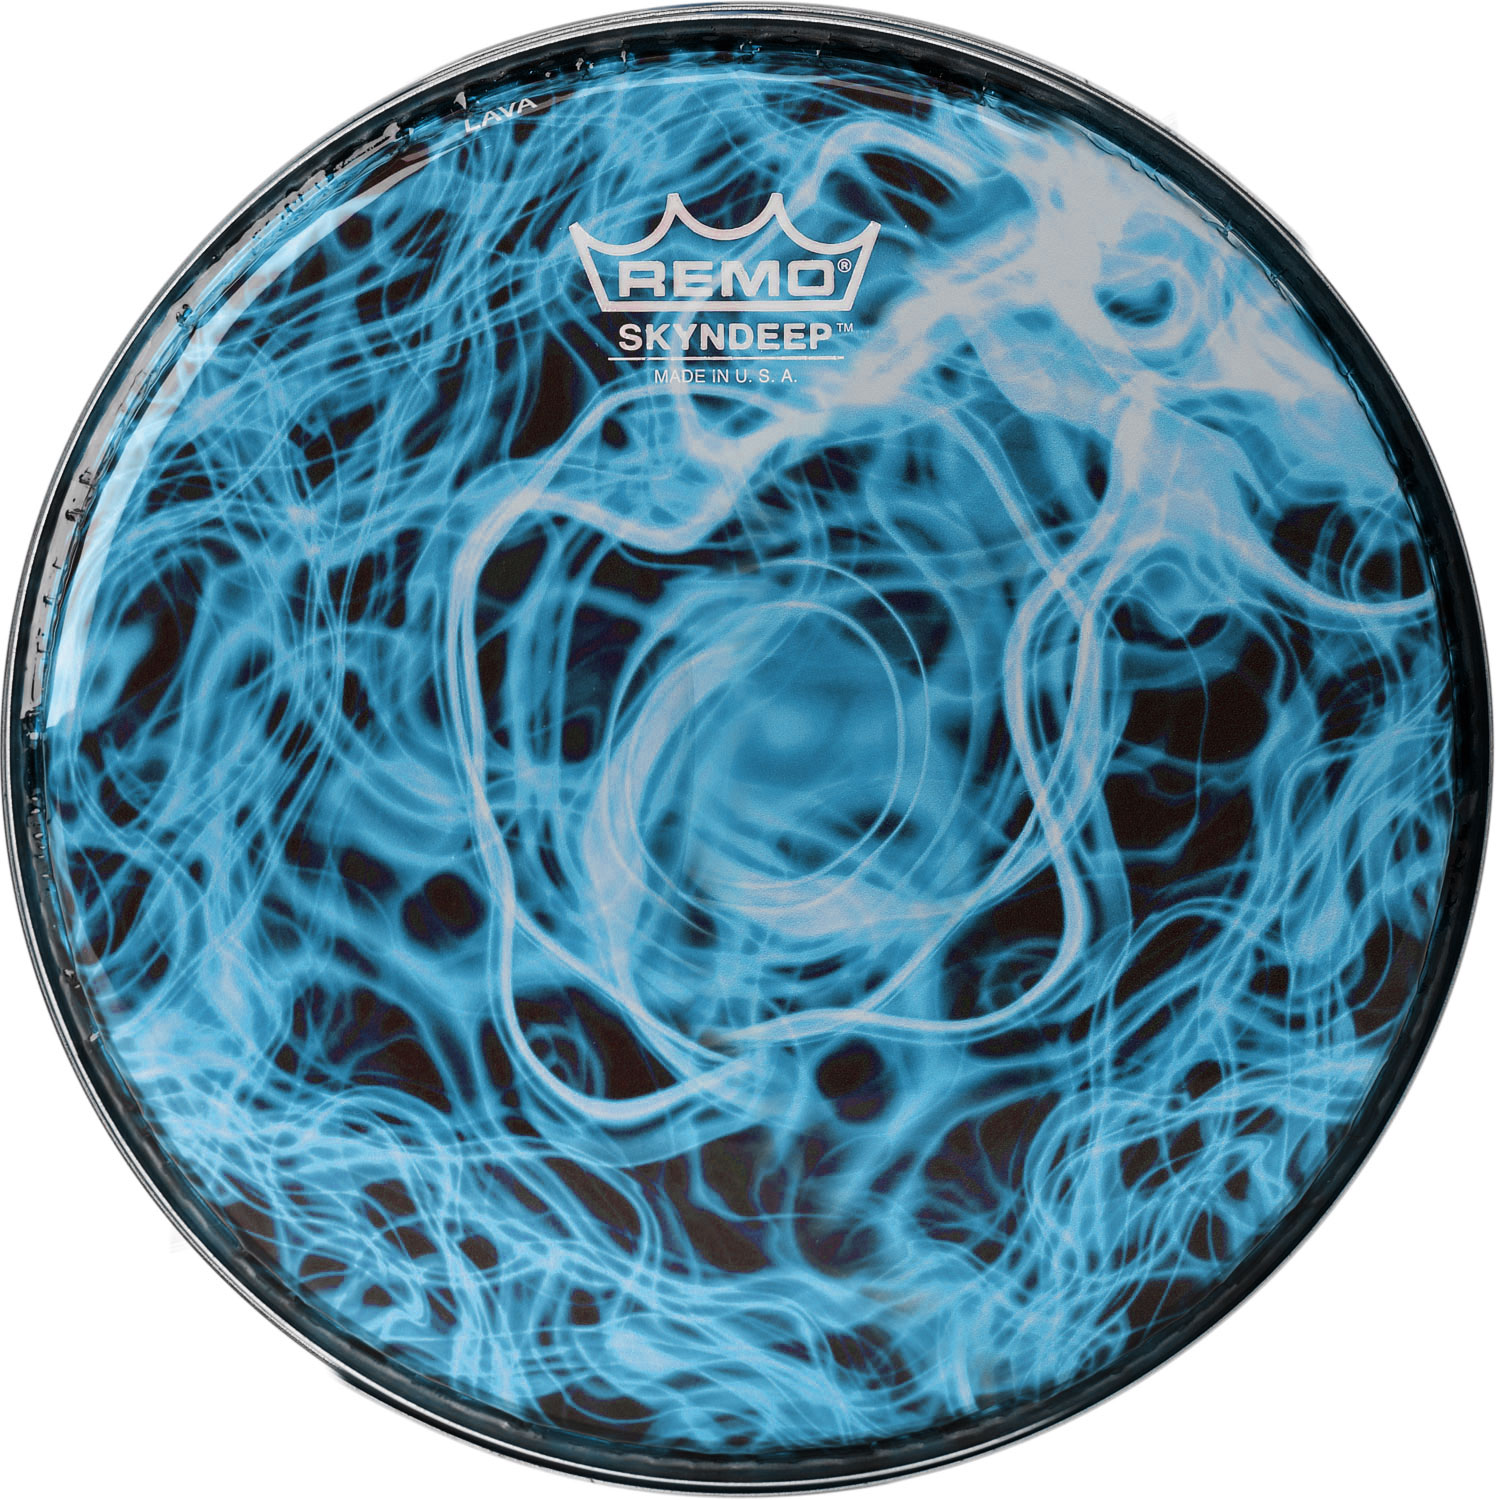 "Remo 10"" R-Series Skyndeep Doumbek Drum Head with Turquoise Wave Graphic"